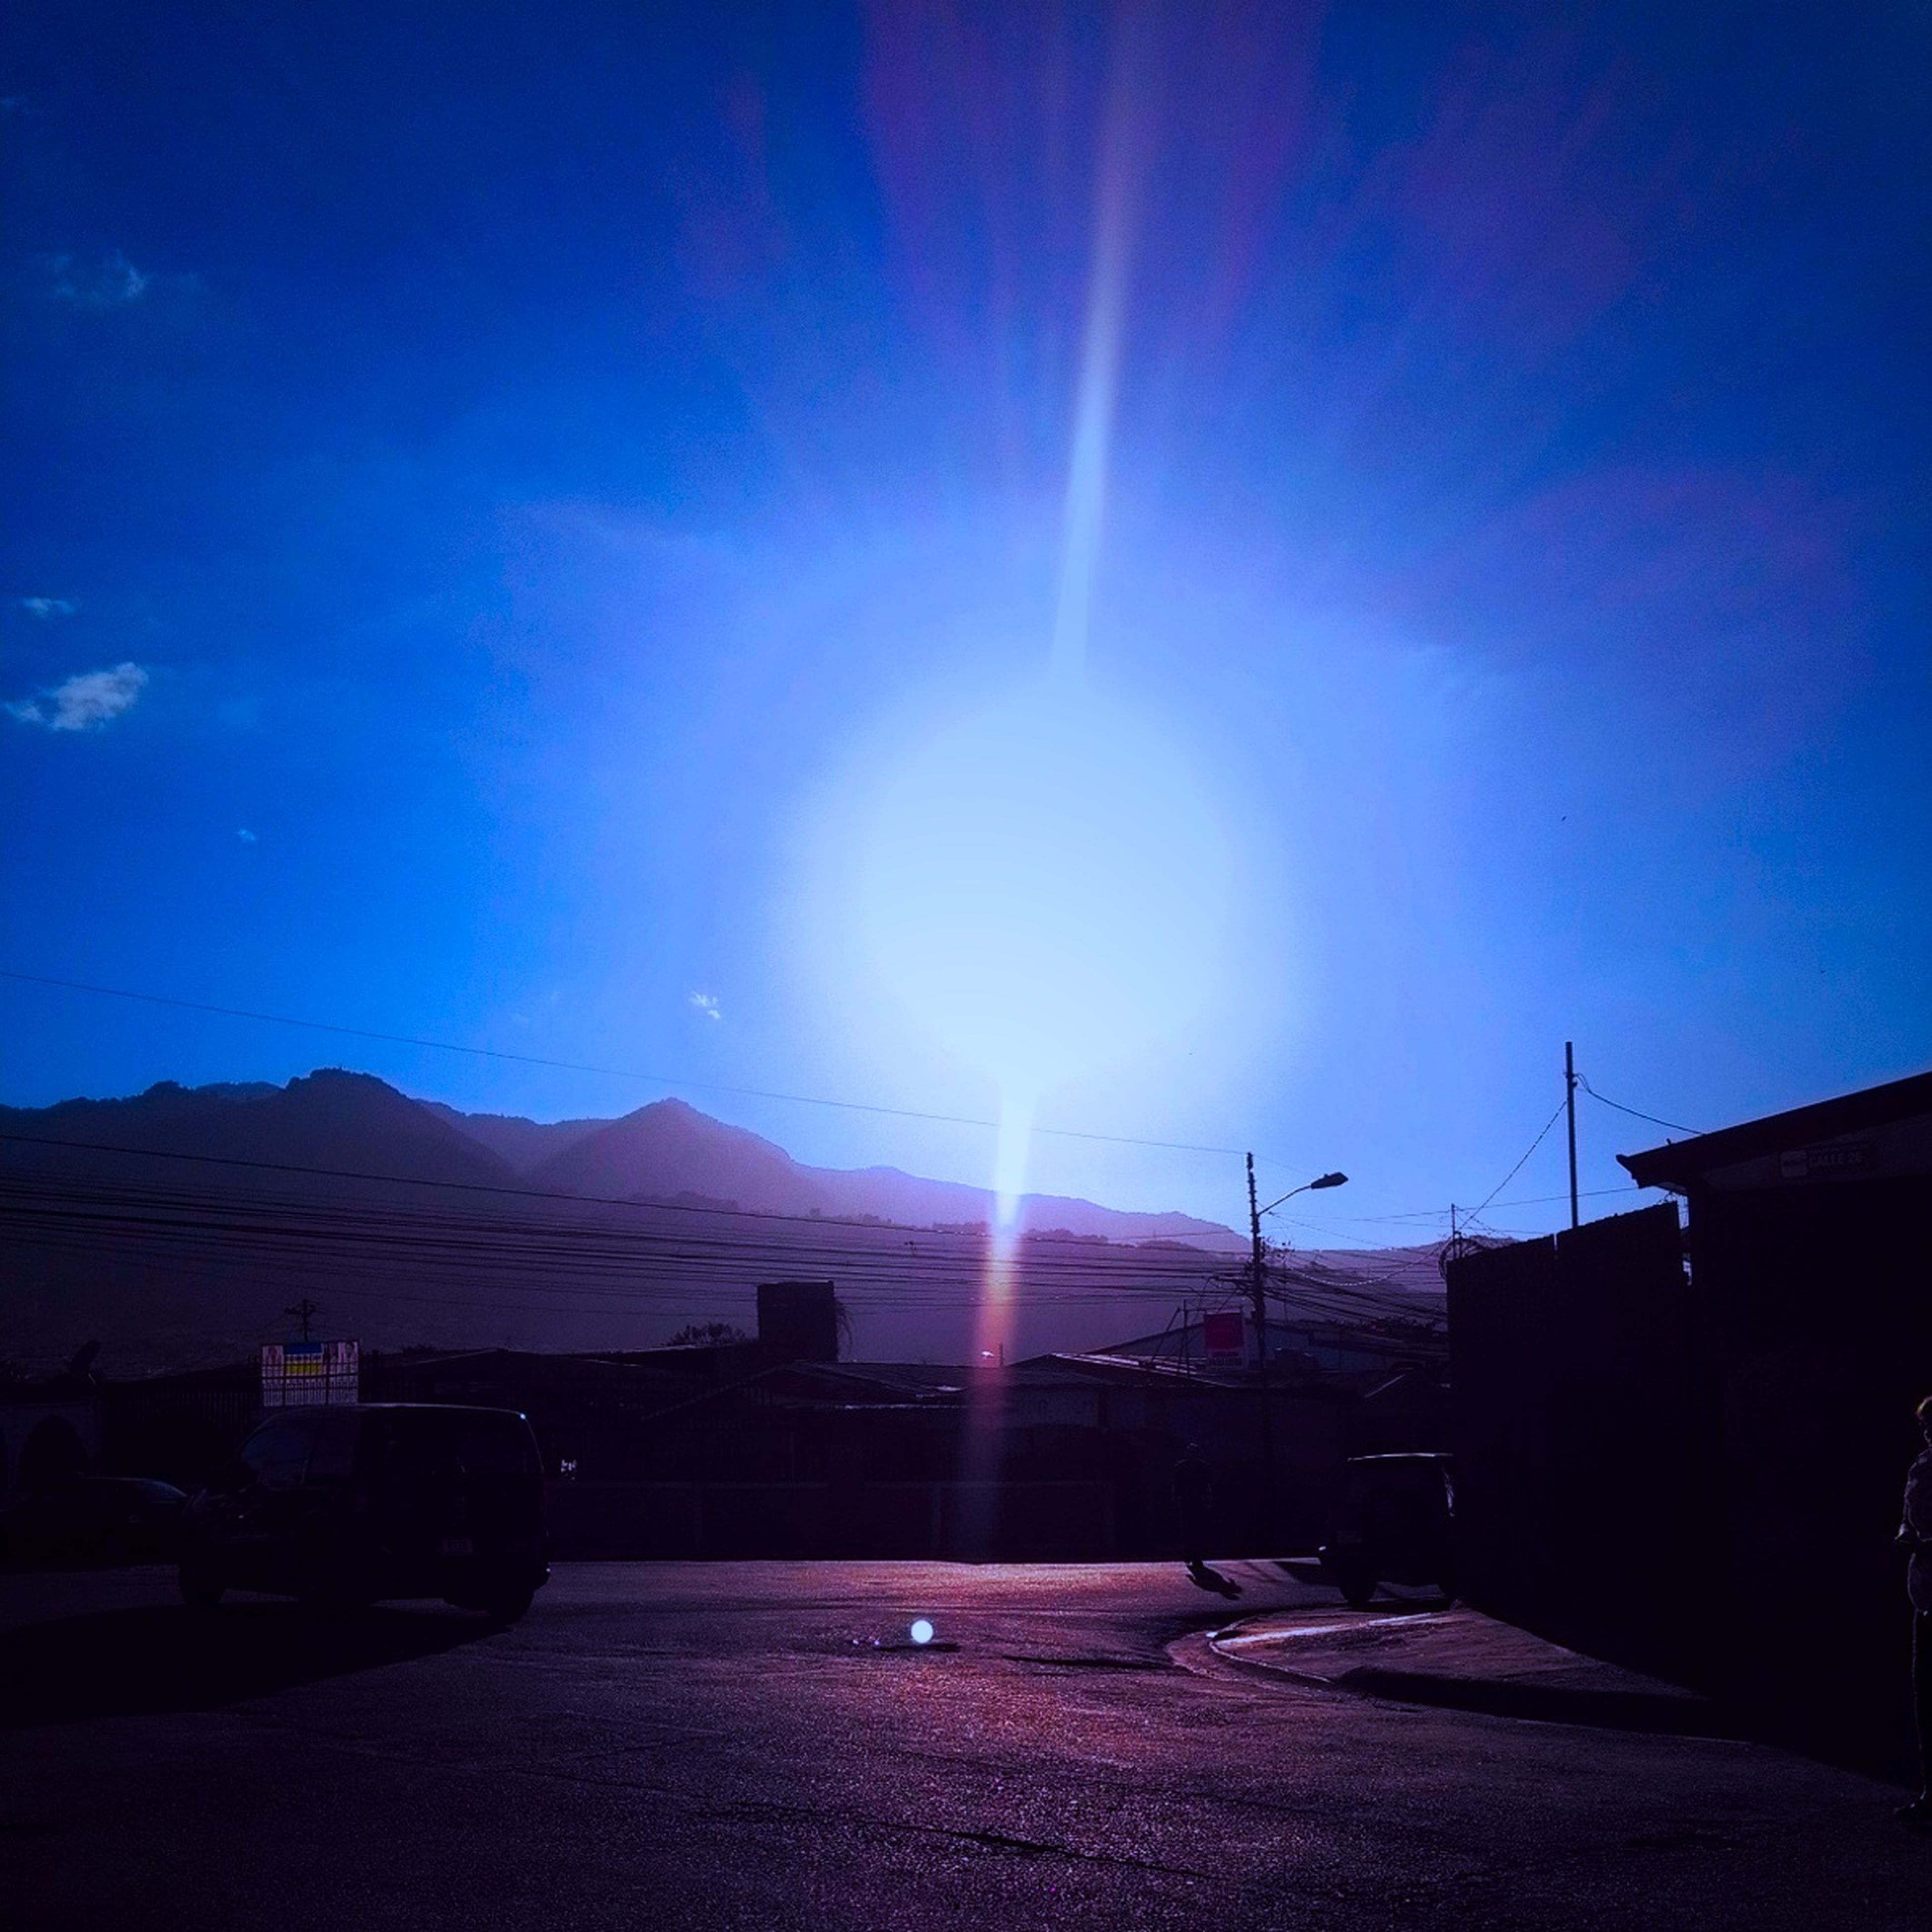 sun, sunbeam, sunlight, lens flare, building exterior, built structure, architecture, blue, sky, house, sunny, bright, clear sky, nature, outdoors, silhouette, car, sunset, road, mountain